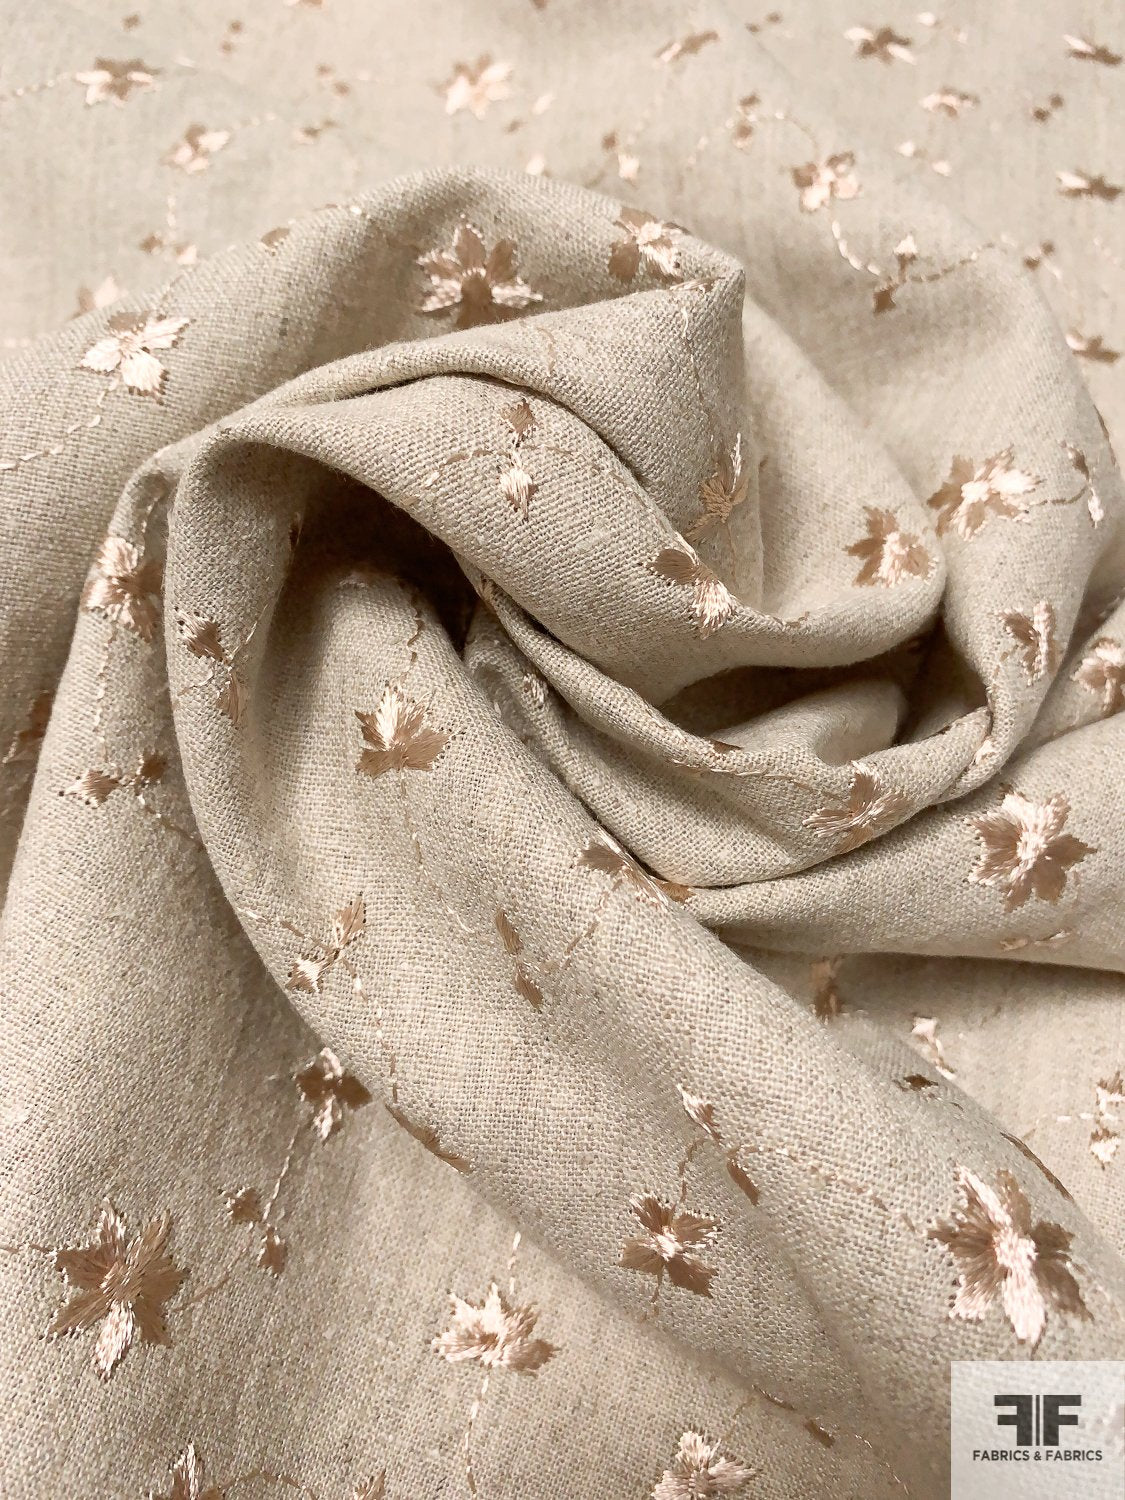 Ditsy Floral Embroidered Linen - Oatmeal / Sand